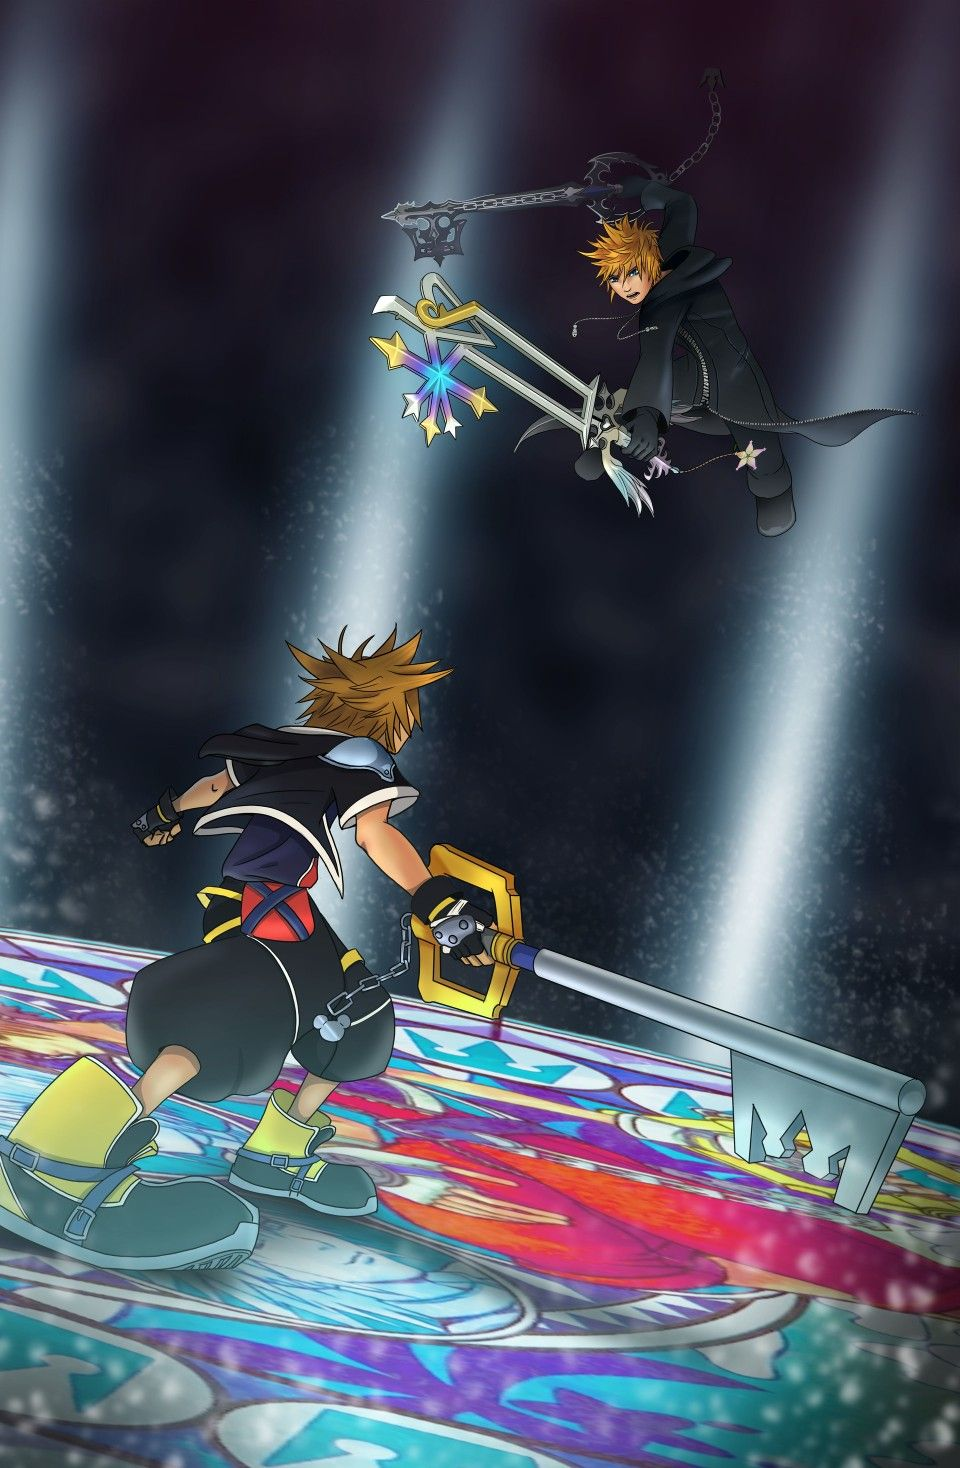 Sora Vs Roxas Roxas Kingdom Hearts Kingdom Hearts Wallpaper Kingdom Hearts Art